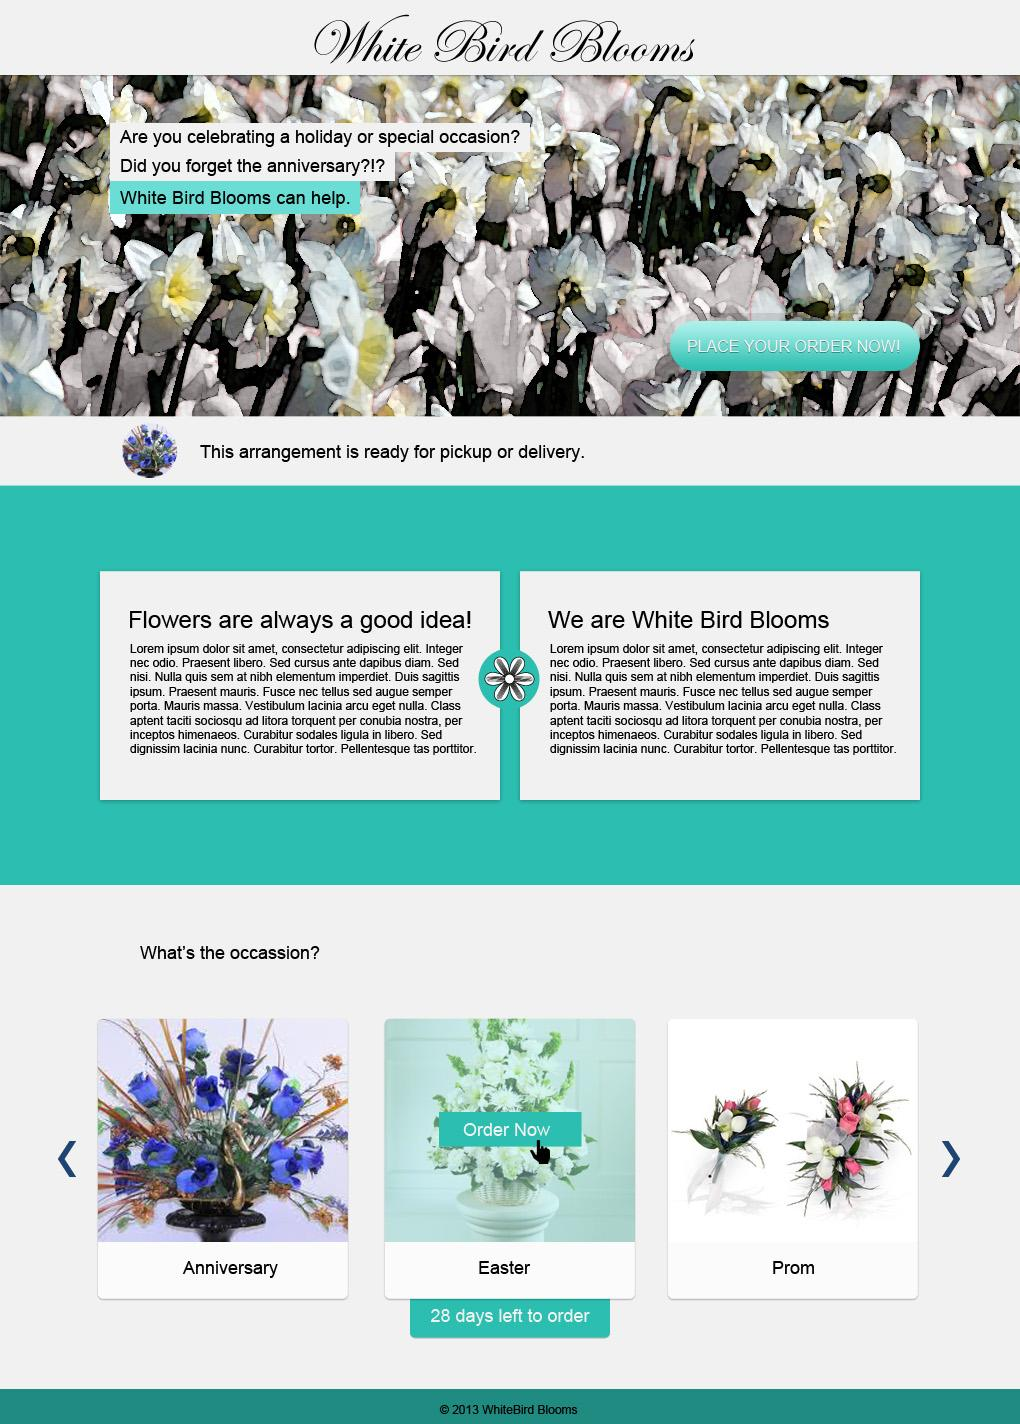 White Bird Blooms - image 1 - student project